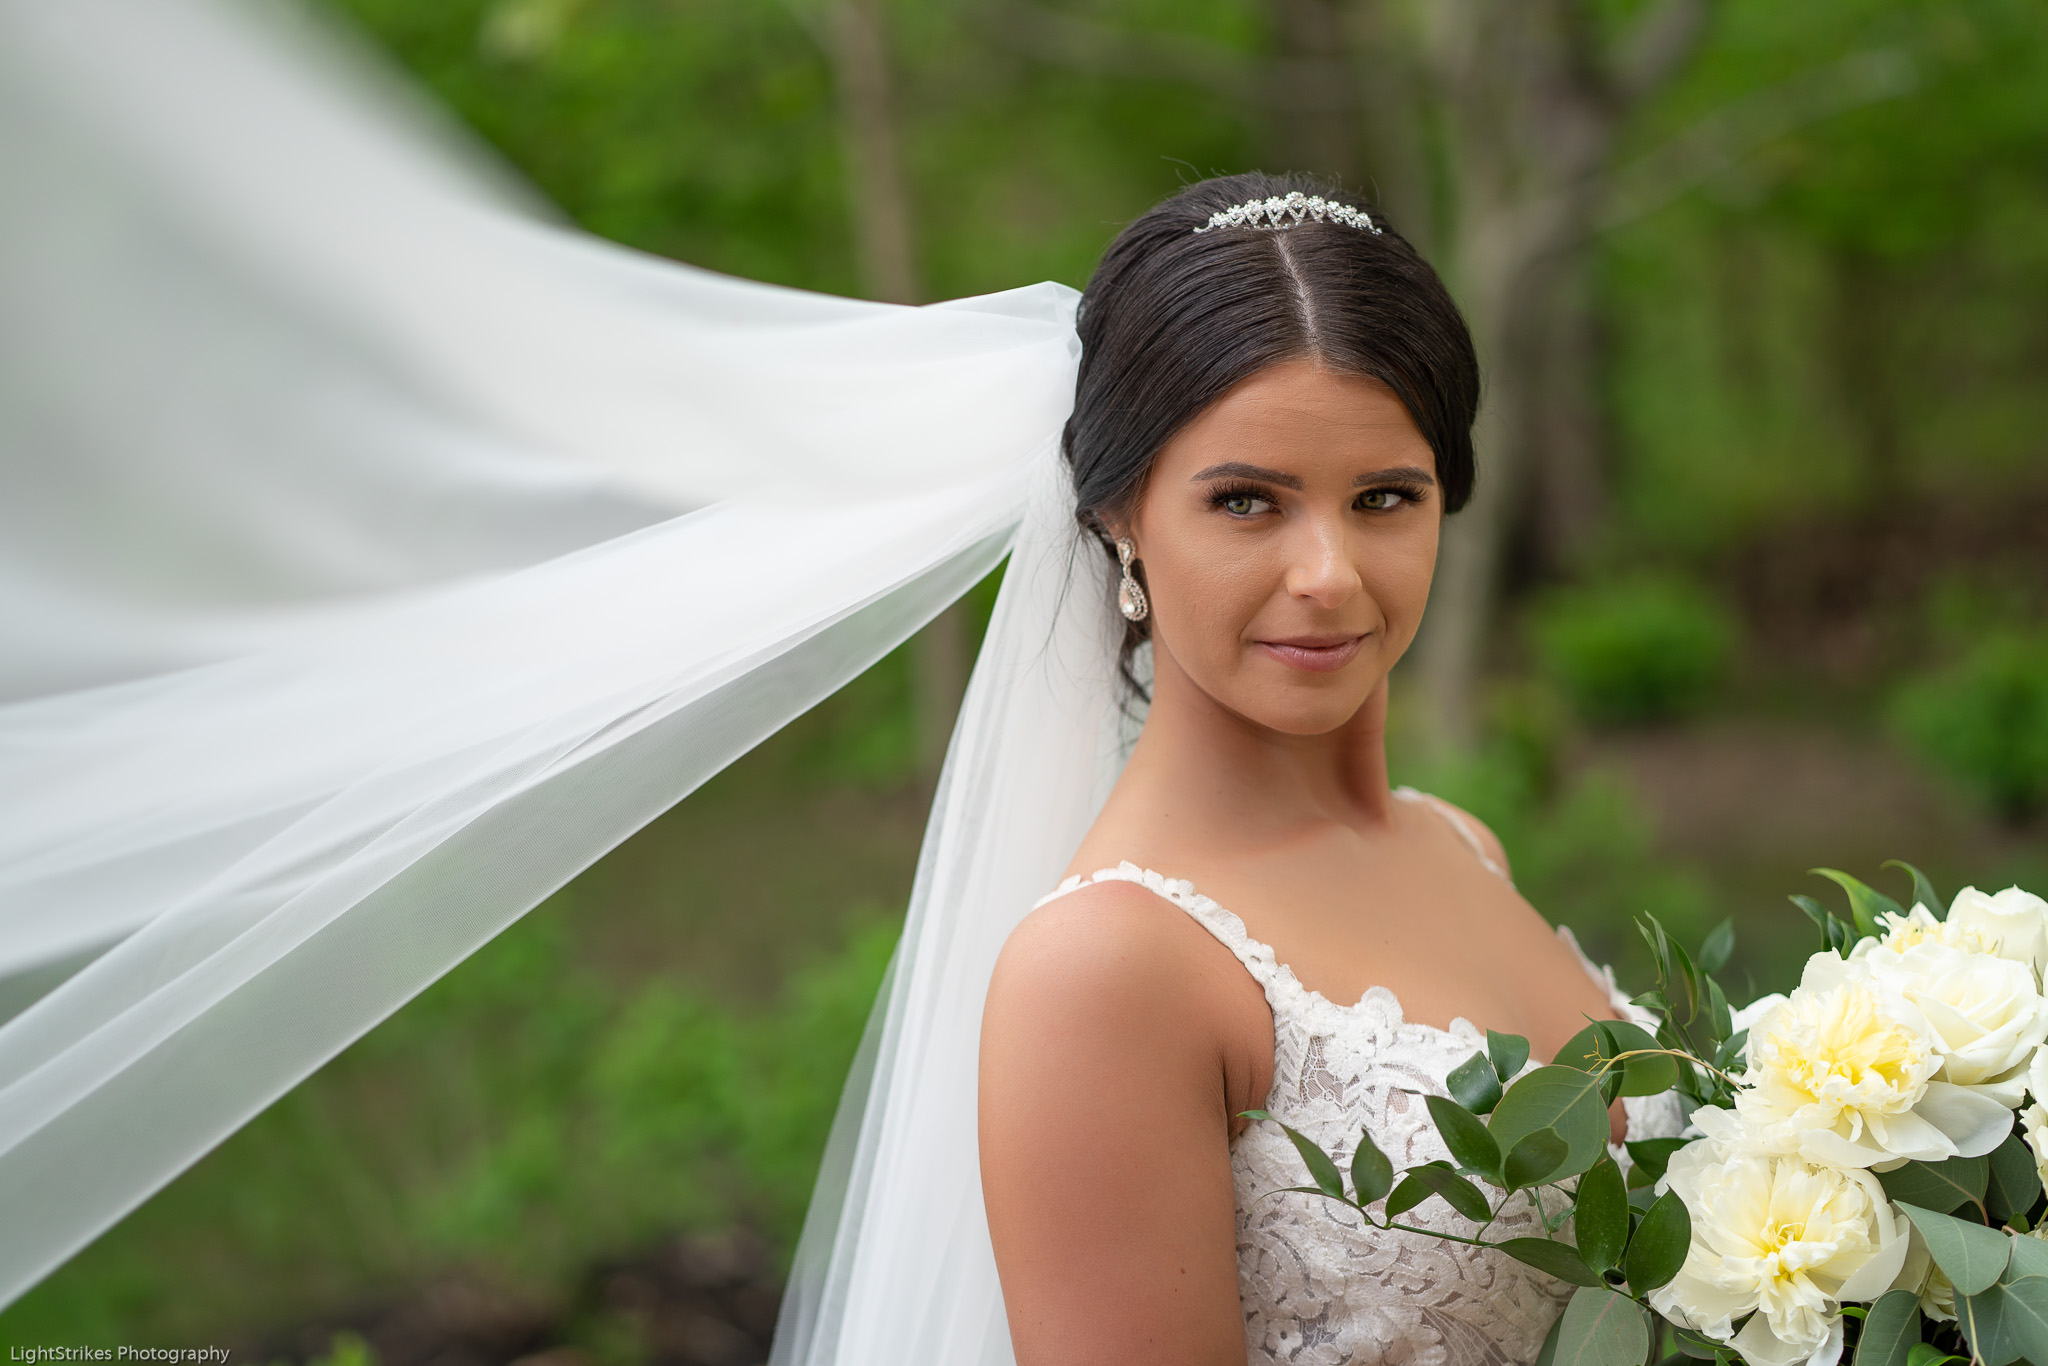 WEDDING TIPS - THE FIRST LOOK